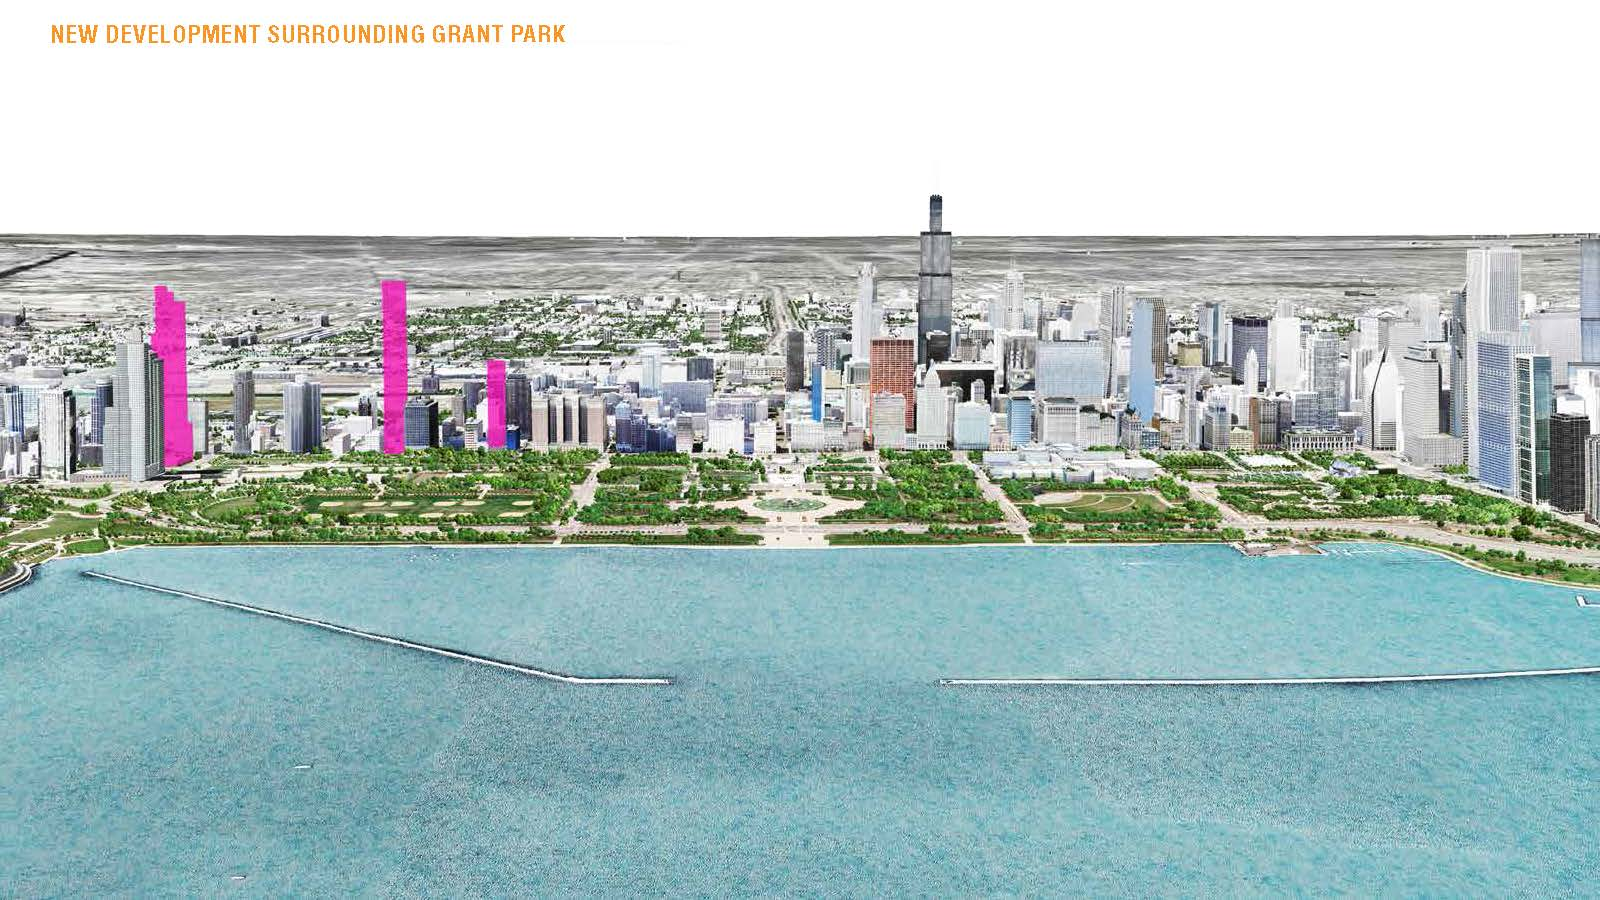 7741_20160713_South Grant Park Charrette Presentation_low res_Page_38.jpg